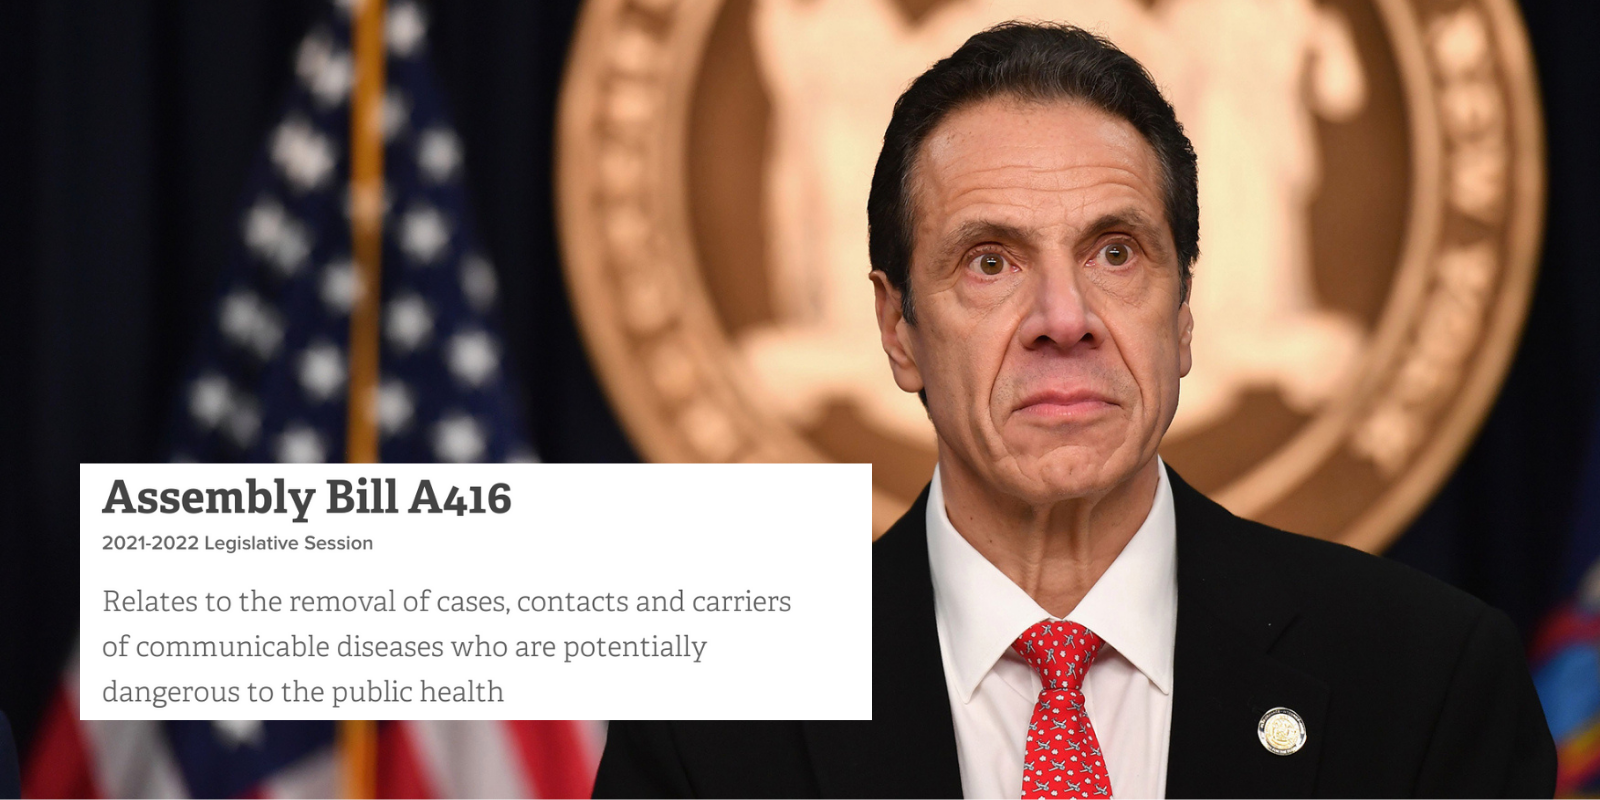 New York bill proposes to detain disease carriers the governor deems 'dangerous to the public health'